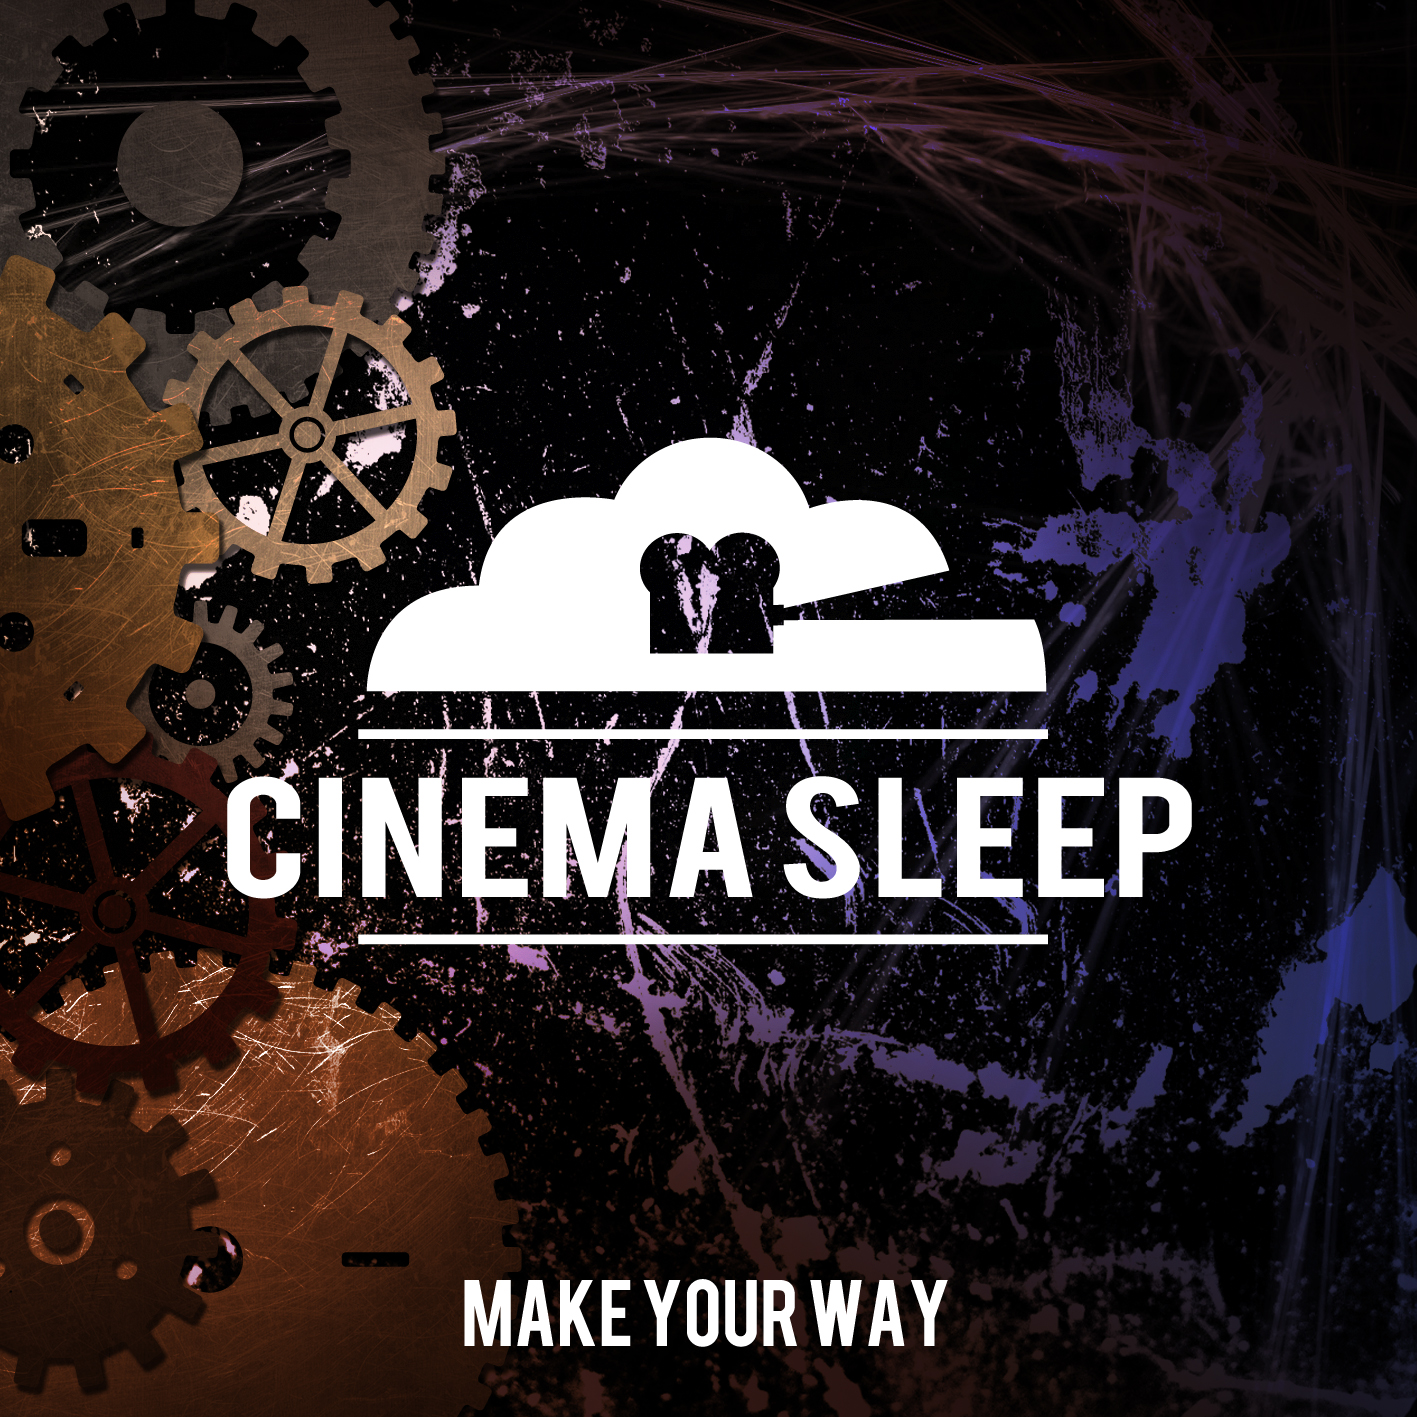 CinemaSleepRGB